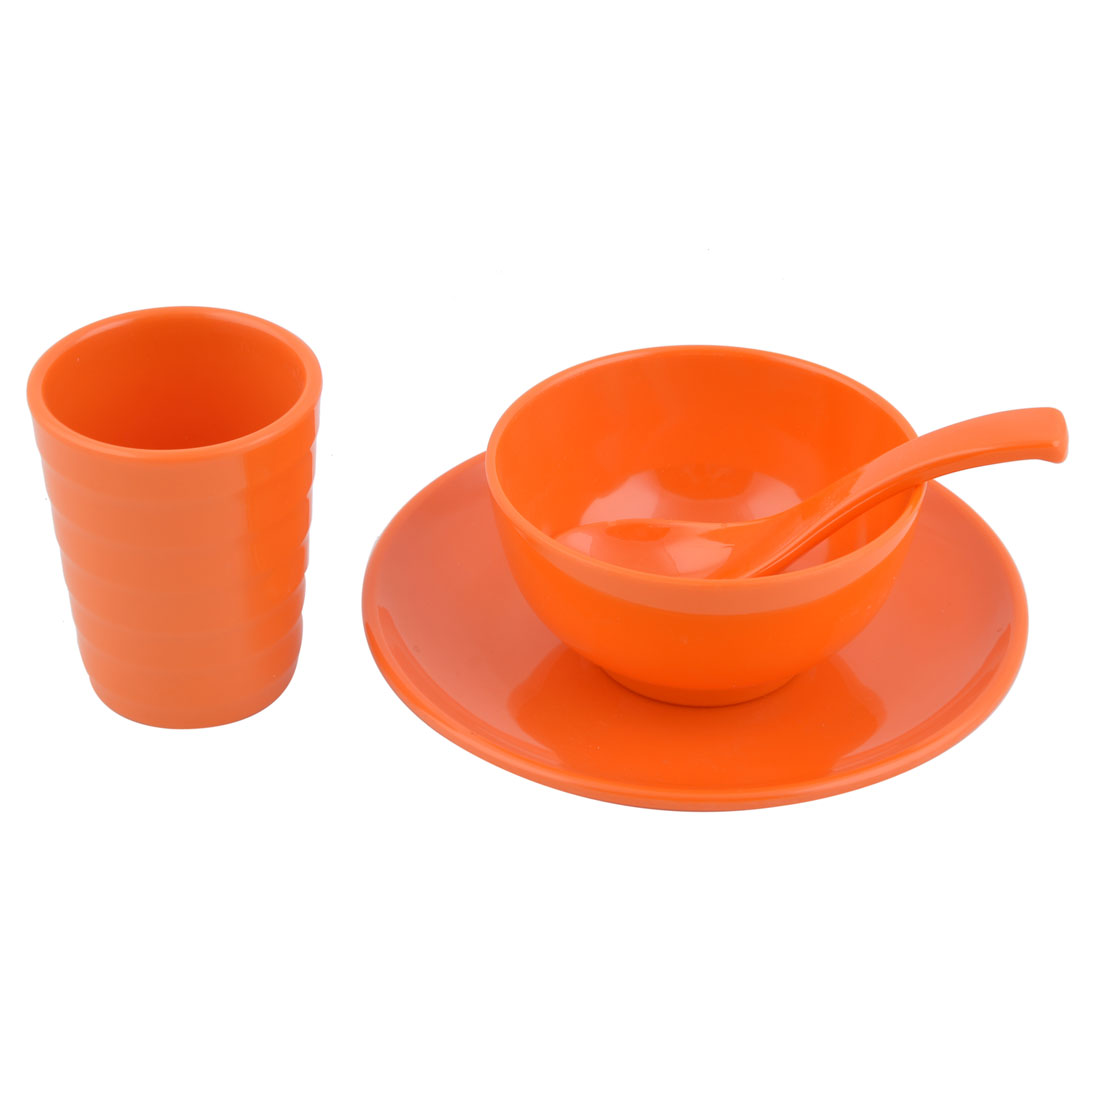 Hotel Restaurant Plastic Dinnerware Tableware Cup Spoon Bowl Plate Orange 4 in 1